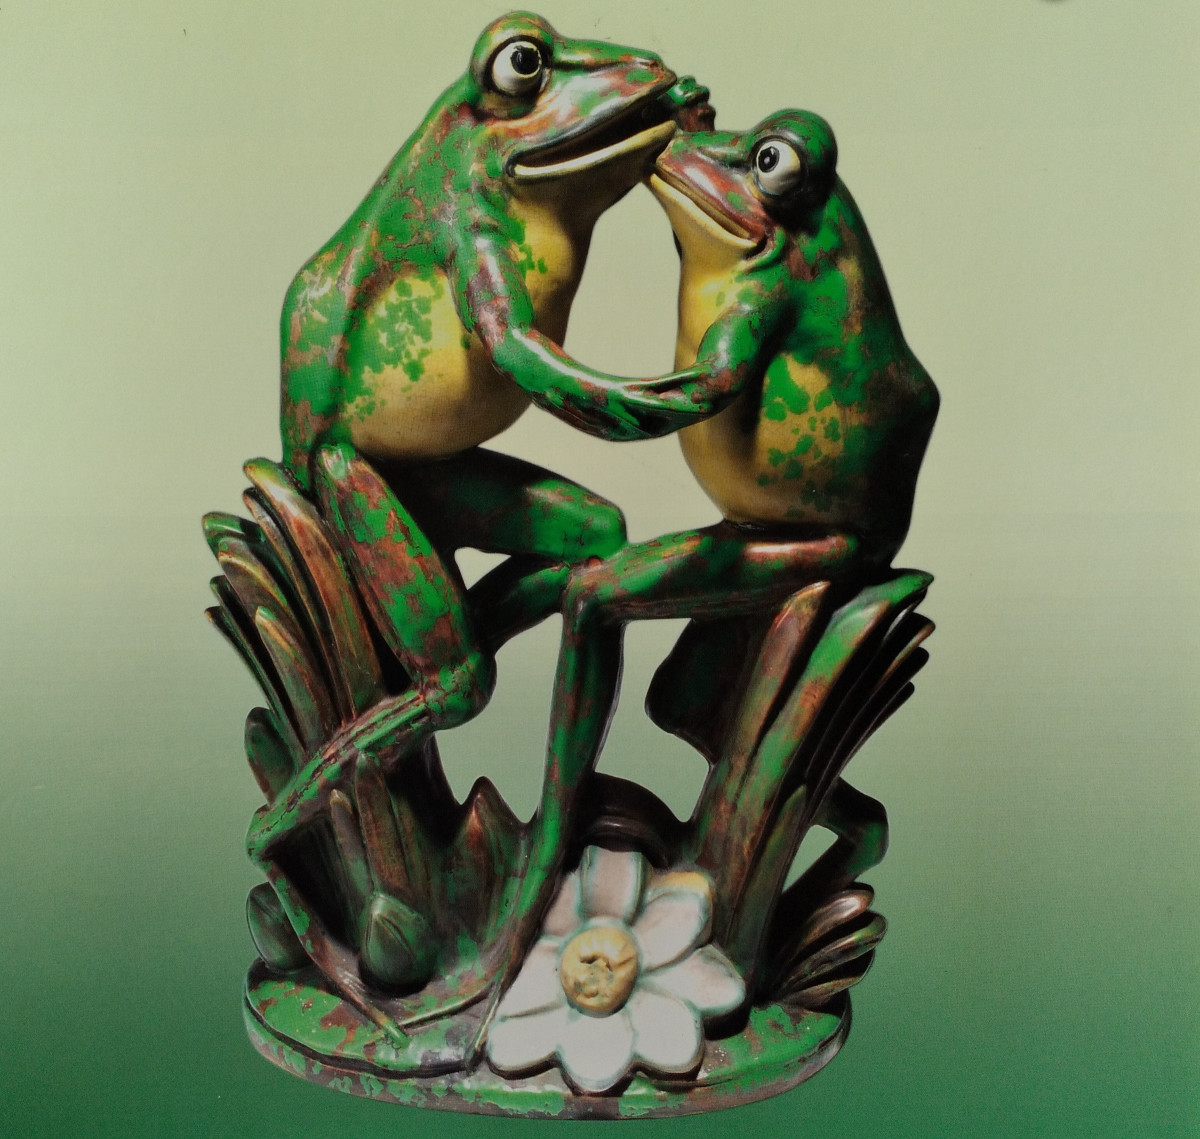 """This rare Weller Coppertone sculpture of dancing frogs, 1920s, 16-3/4"""" x 11-1/2"""" x 6"""", sold at auction in 2015 for $4,750."""